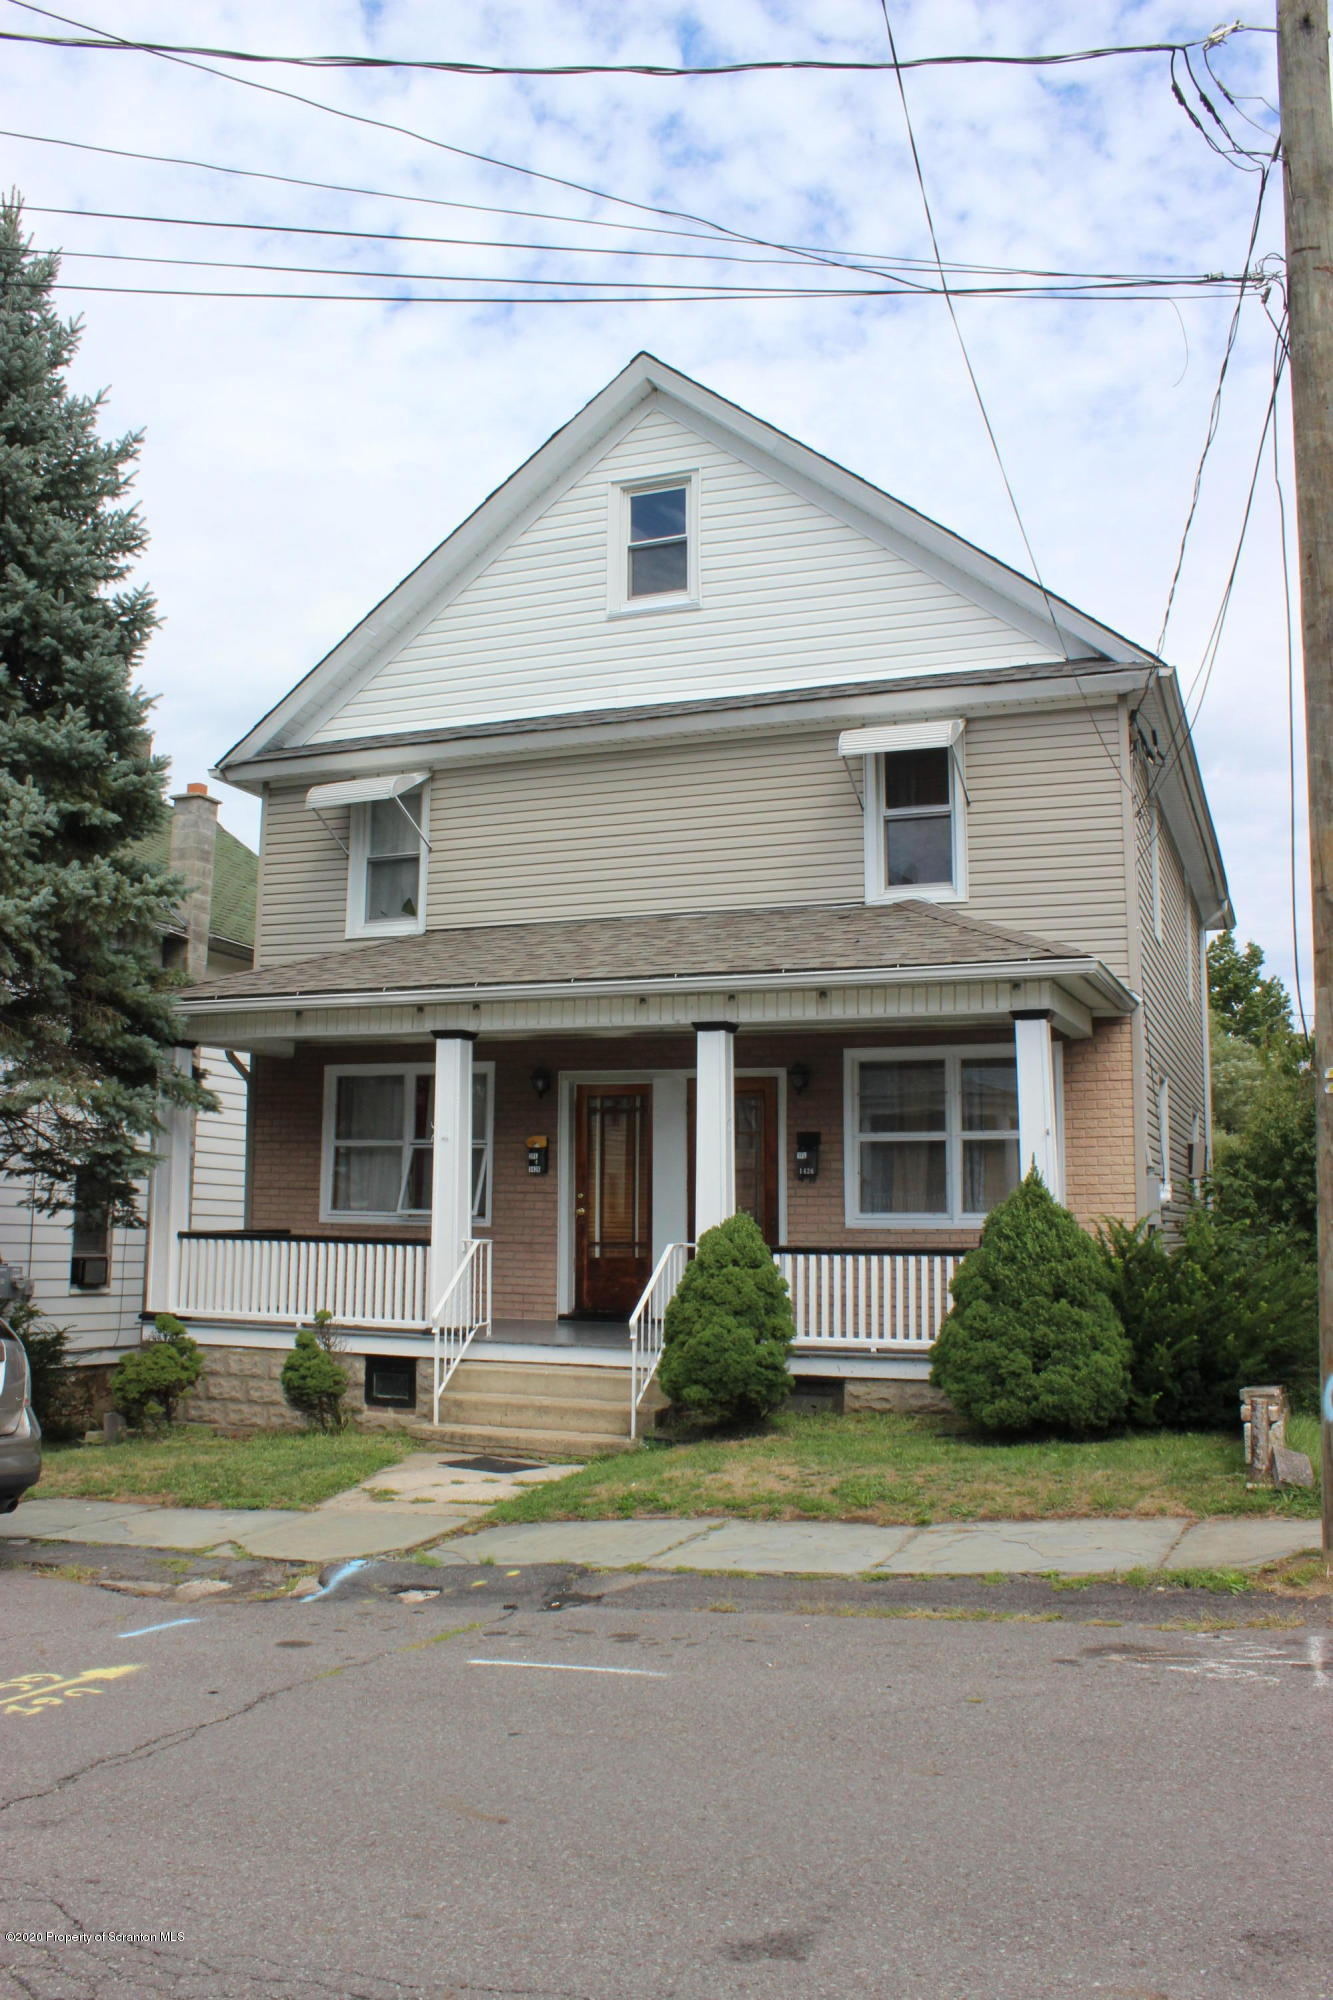 1426 Locust St, Scranton, Pennsylvania 18504, ,Multi-Family,For Sale,Locust,20-3565